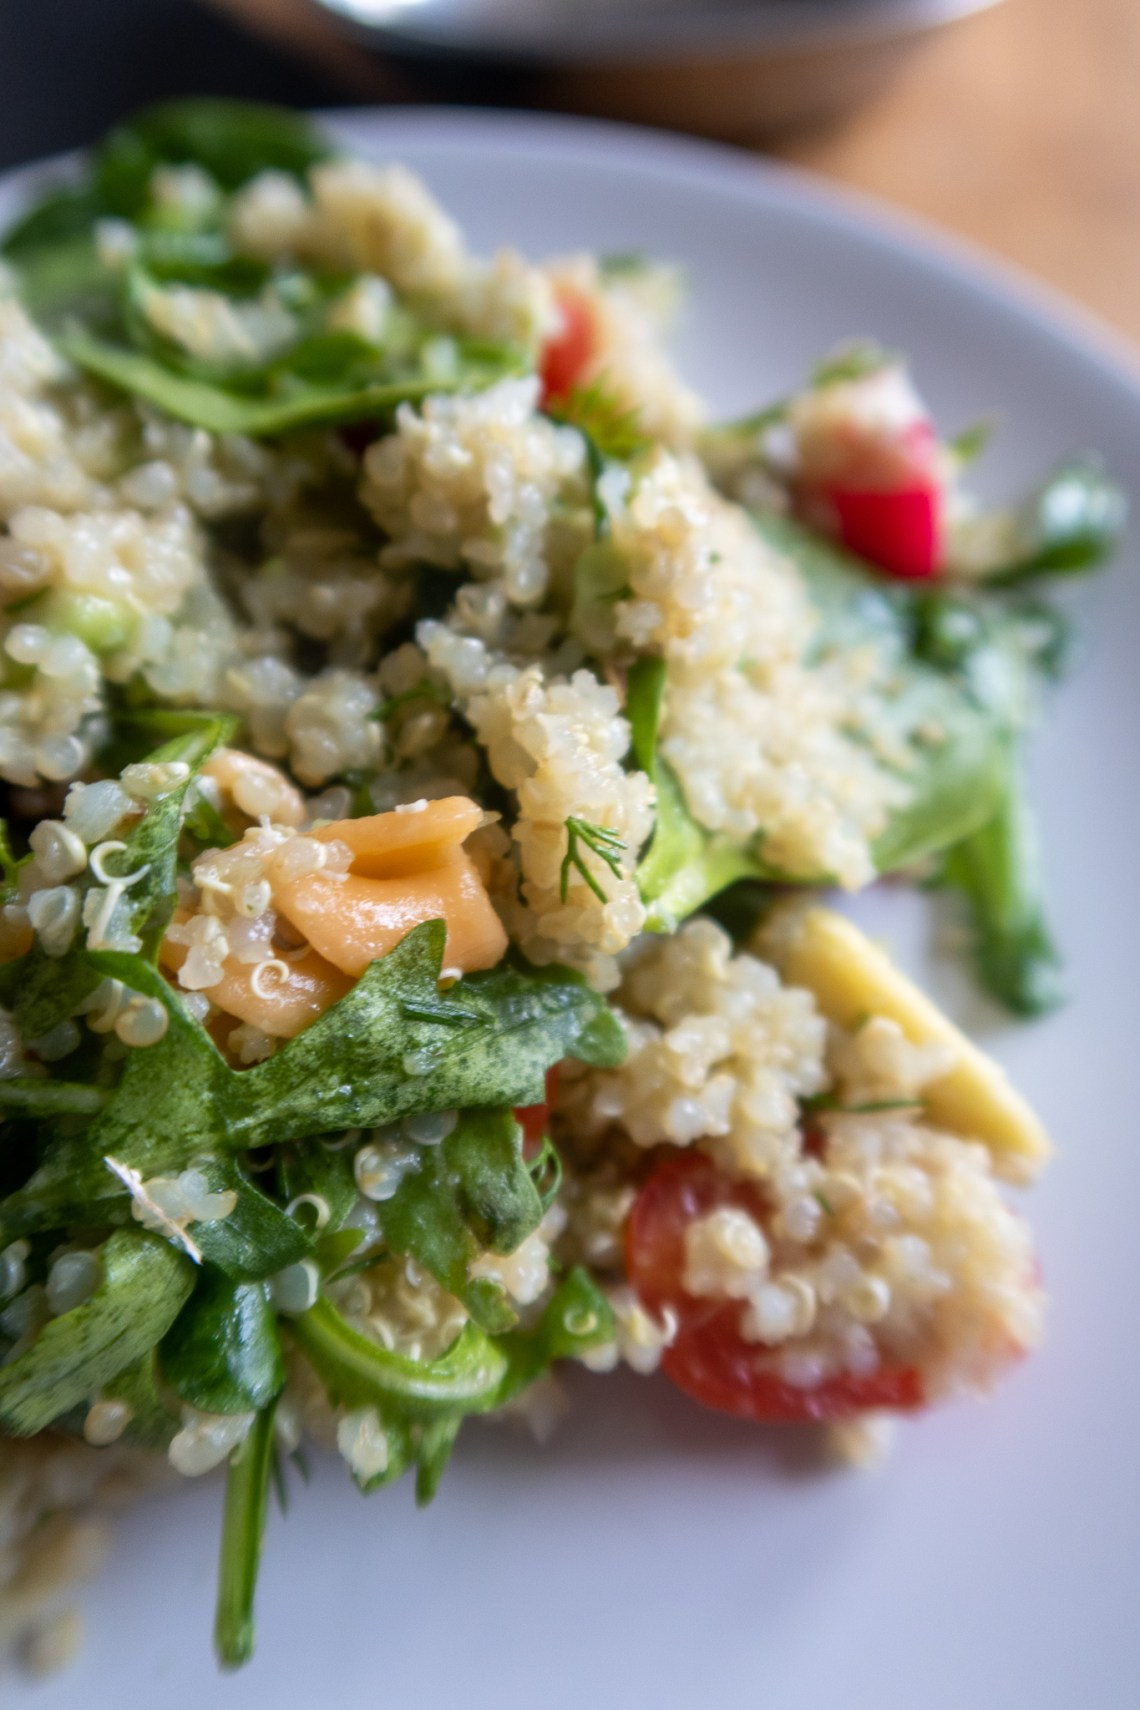 Quinoa and pasta salad from Barfi Catering